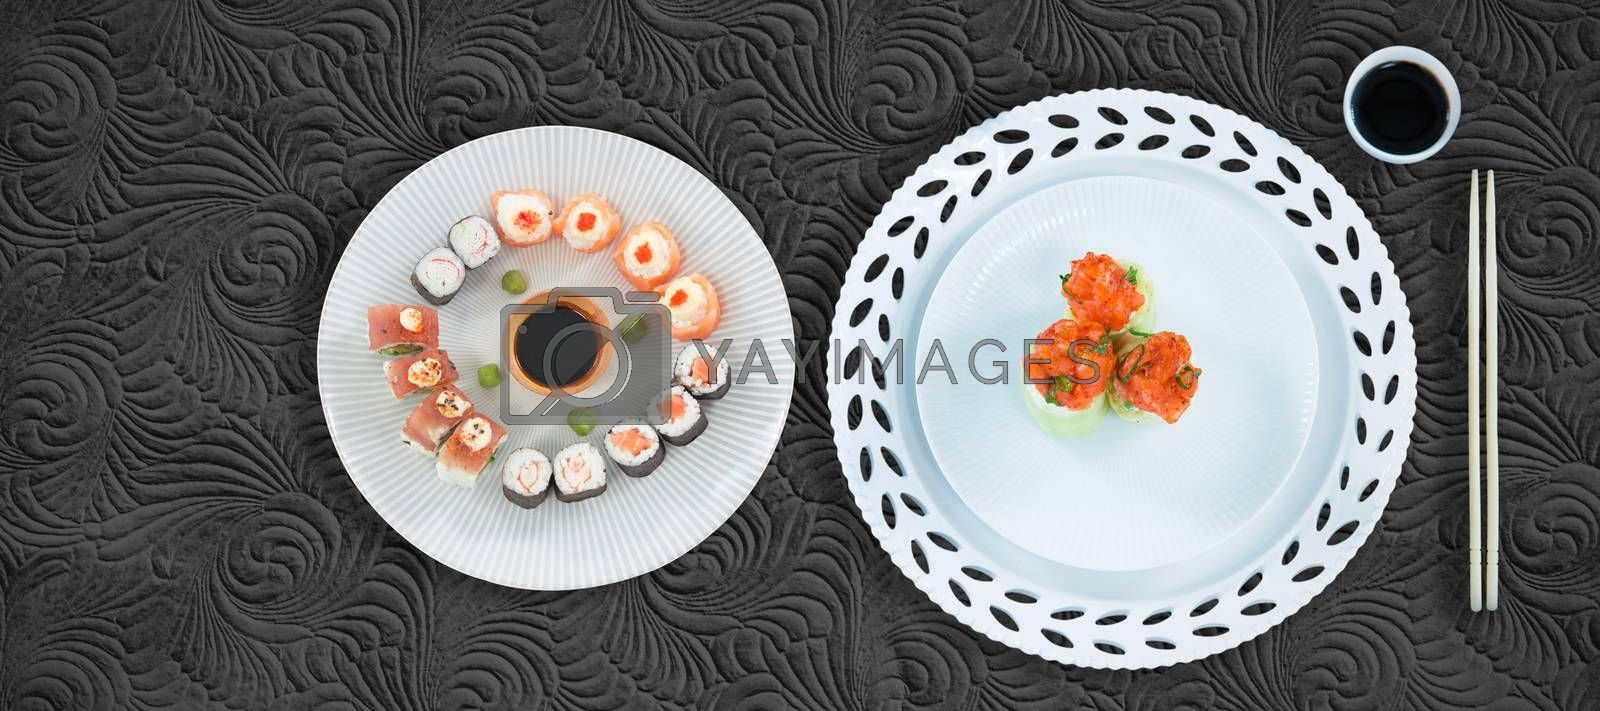 Close up of food in plate by chopstick against black background